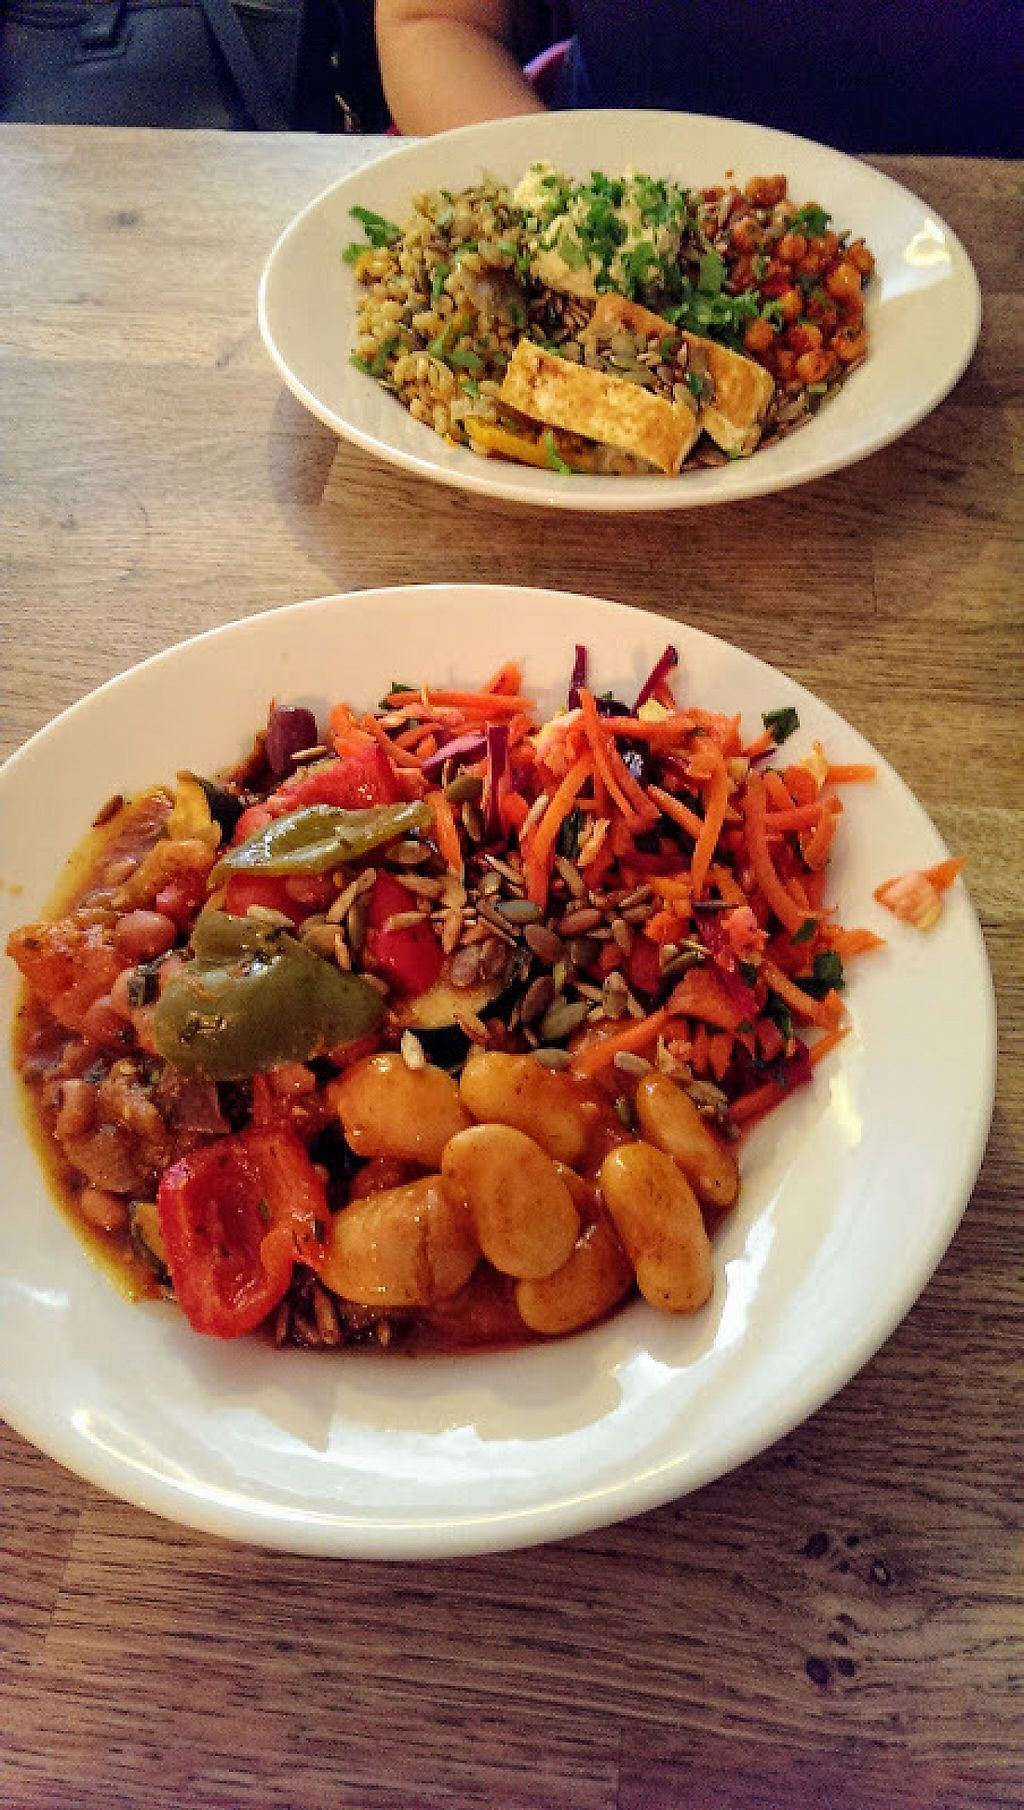 """Photo of Will's Deli  by <a href=""""/members/profile/sophiecow"""">sophiecow</a> <br/>Vegan lunch salads  <br/> February 5, 2017  - <a href='/contact/abuse/image/42429/222941'>Report</a>"""